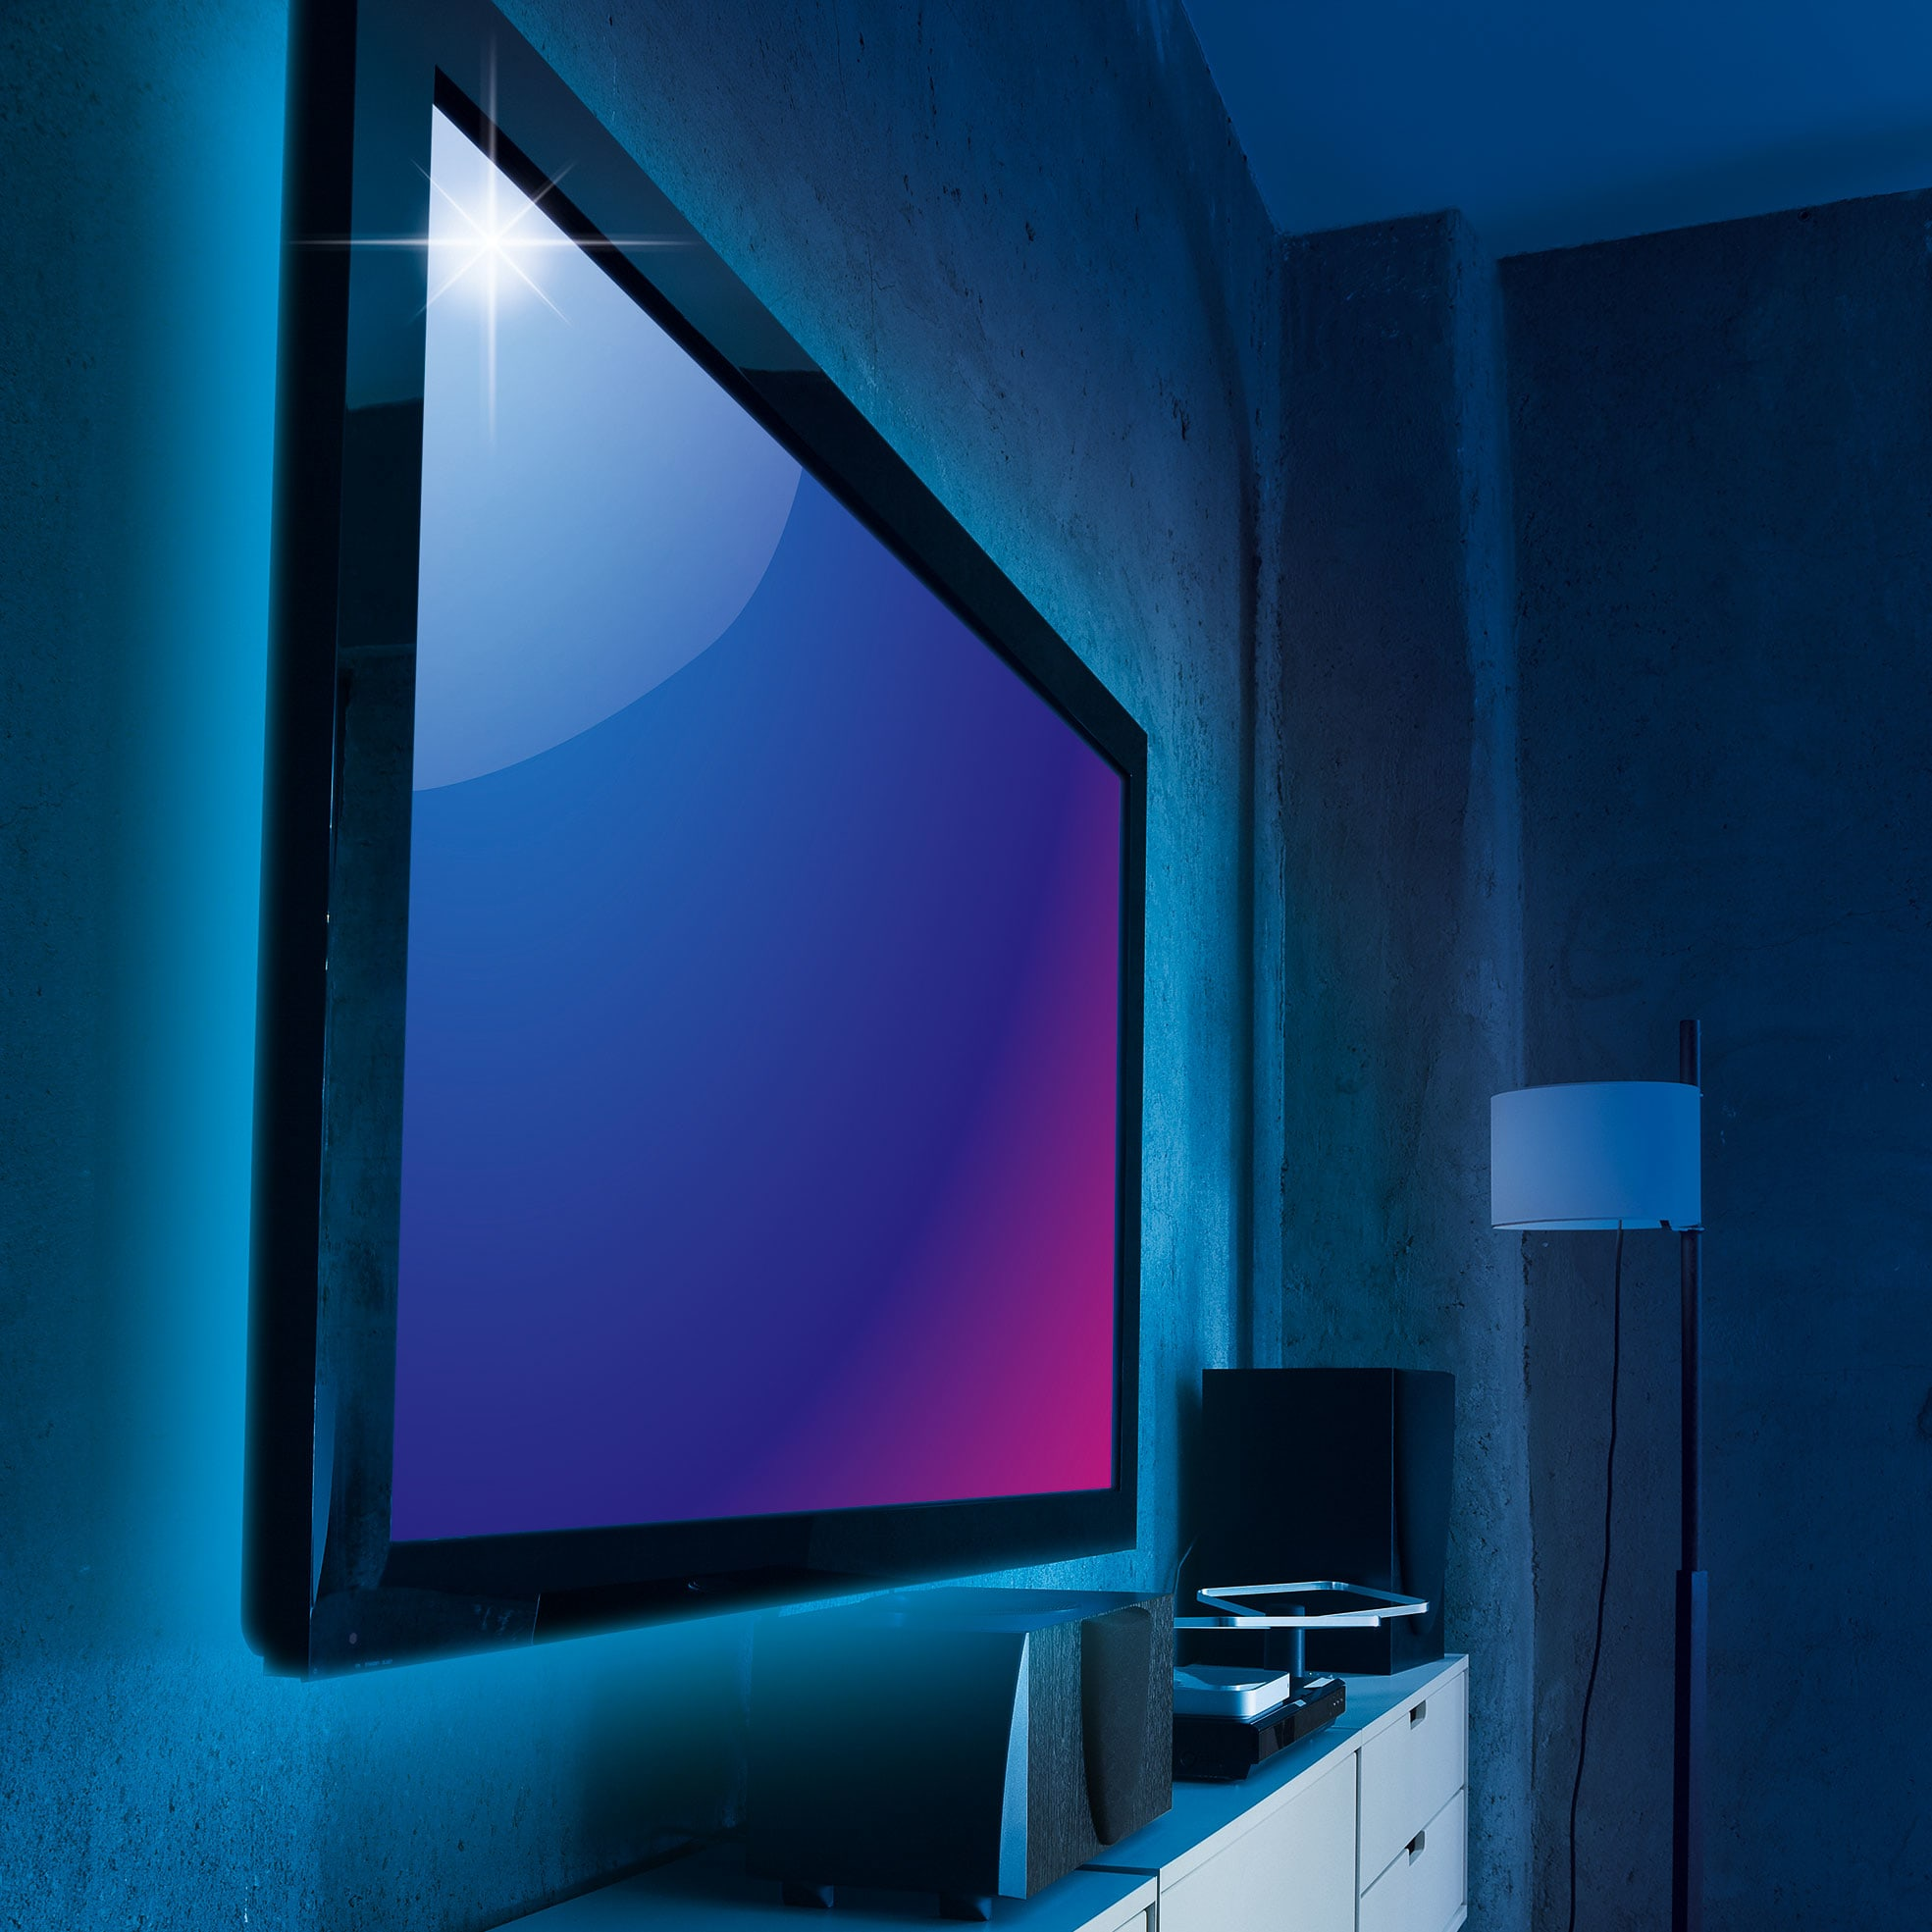 led tv achtergrondverlichting voordelig bestellen bij eurotops. Black Bedroom Furniture Sets. Home Design Ideas